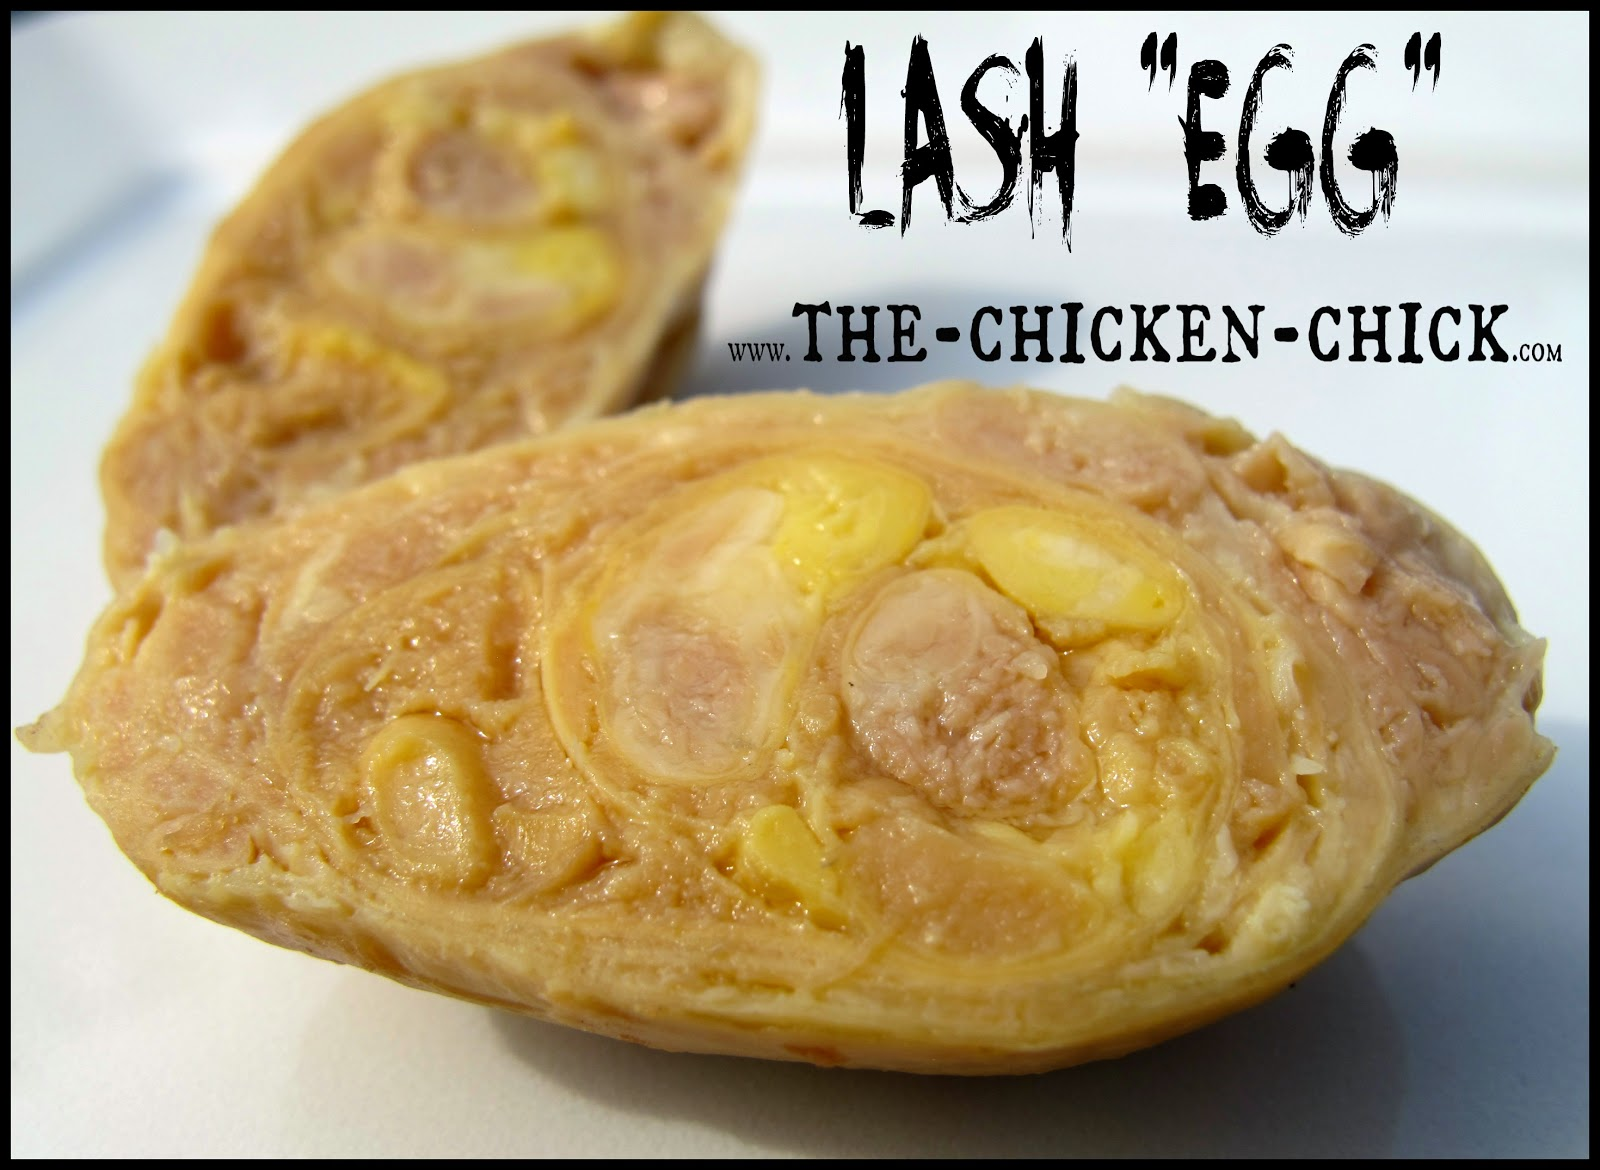 """This hot mess, laid by one of my hens, is often referred to as a """"lash egg,"""" and is a very misunderstood phenomenon in backyard chicken keeping. Lash eggs consist primarily of coagulated pus, not yolk or egg white. I took the liberty of  renaming the lash egg more appropriately, a Pus Coagulegg.  It's got a nice ring to it, don't you think? Unfortunately for the hen, the Pus Coagulegg is no laughing matter as the prognosis for a bird producing them is poor, at best."""